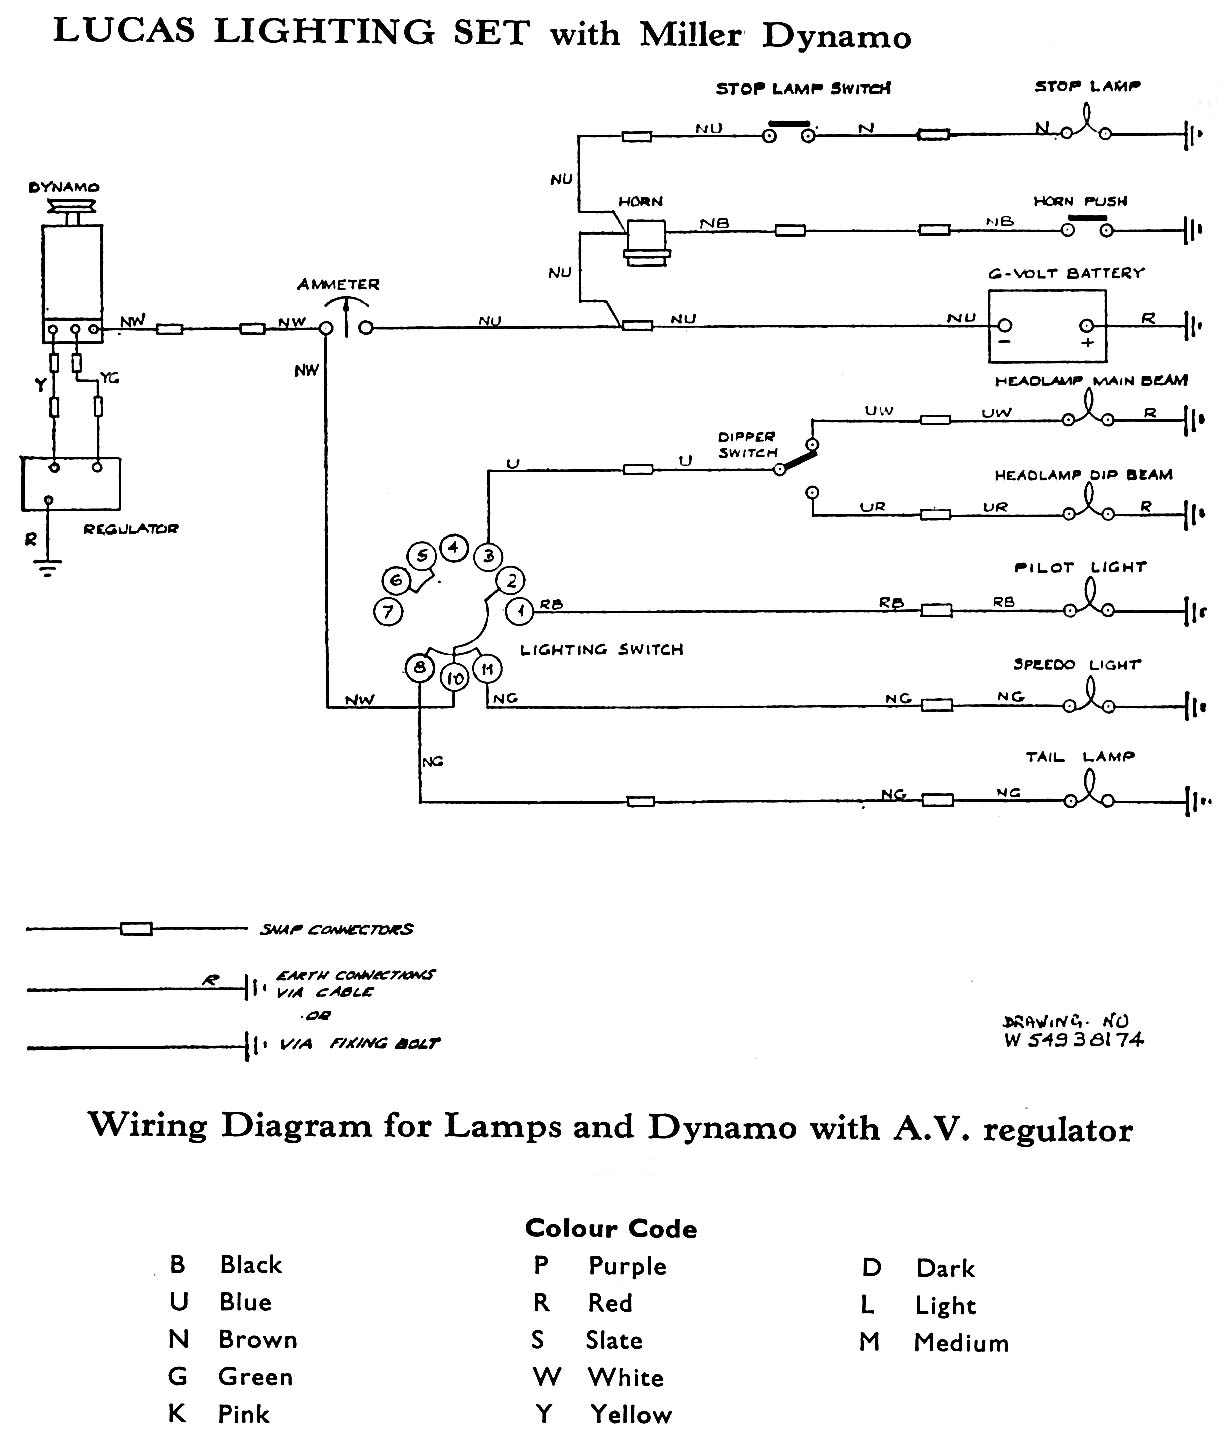 Thruxton Wiring Schematic Wire Schematics Plumbing Ecu 2014 Diagram On Electrical